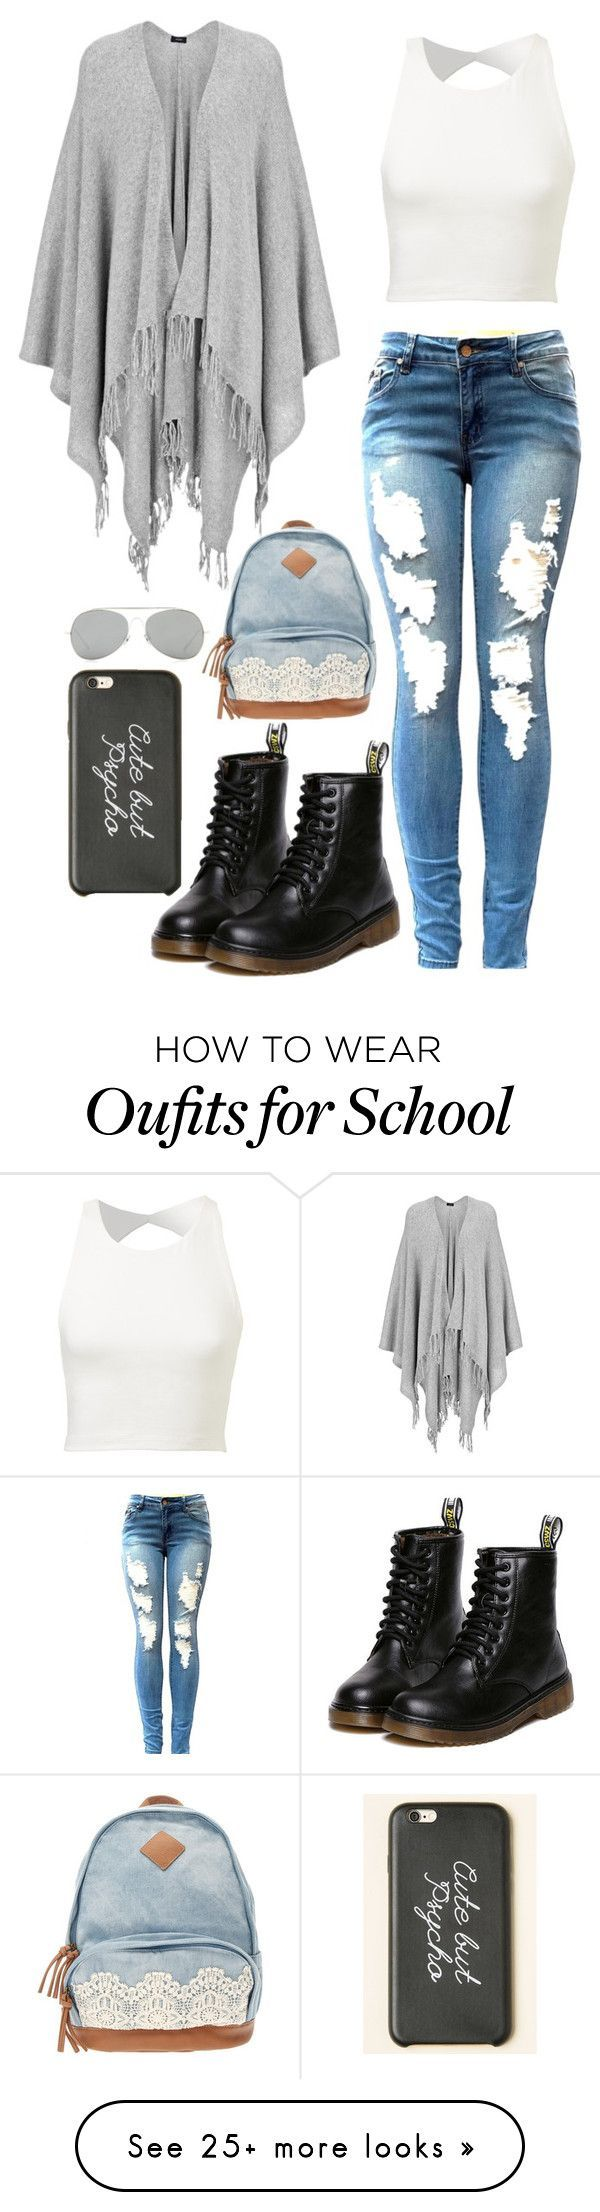 """""""Ugh School"""" by kevinfabulous on Polyvore featuring Joseph and Acne Studios"""